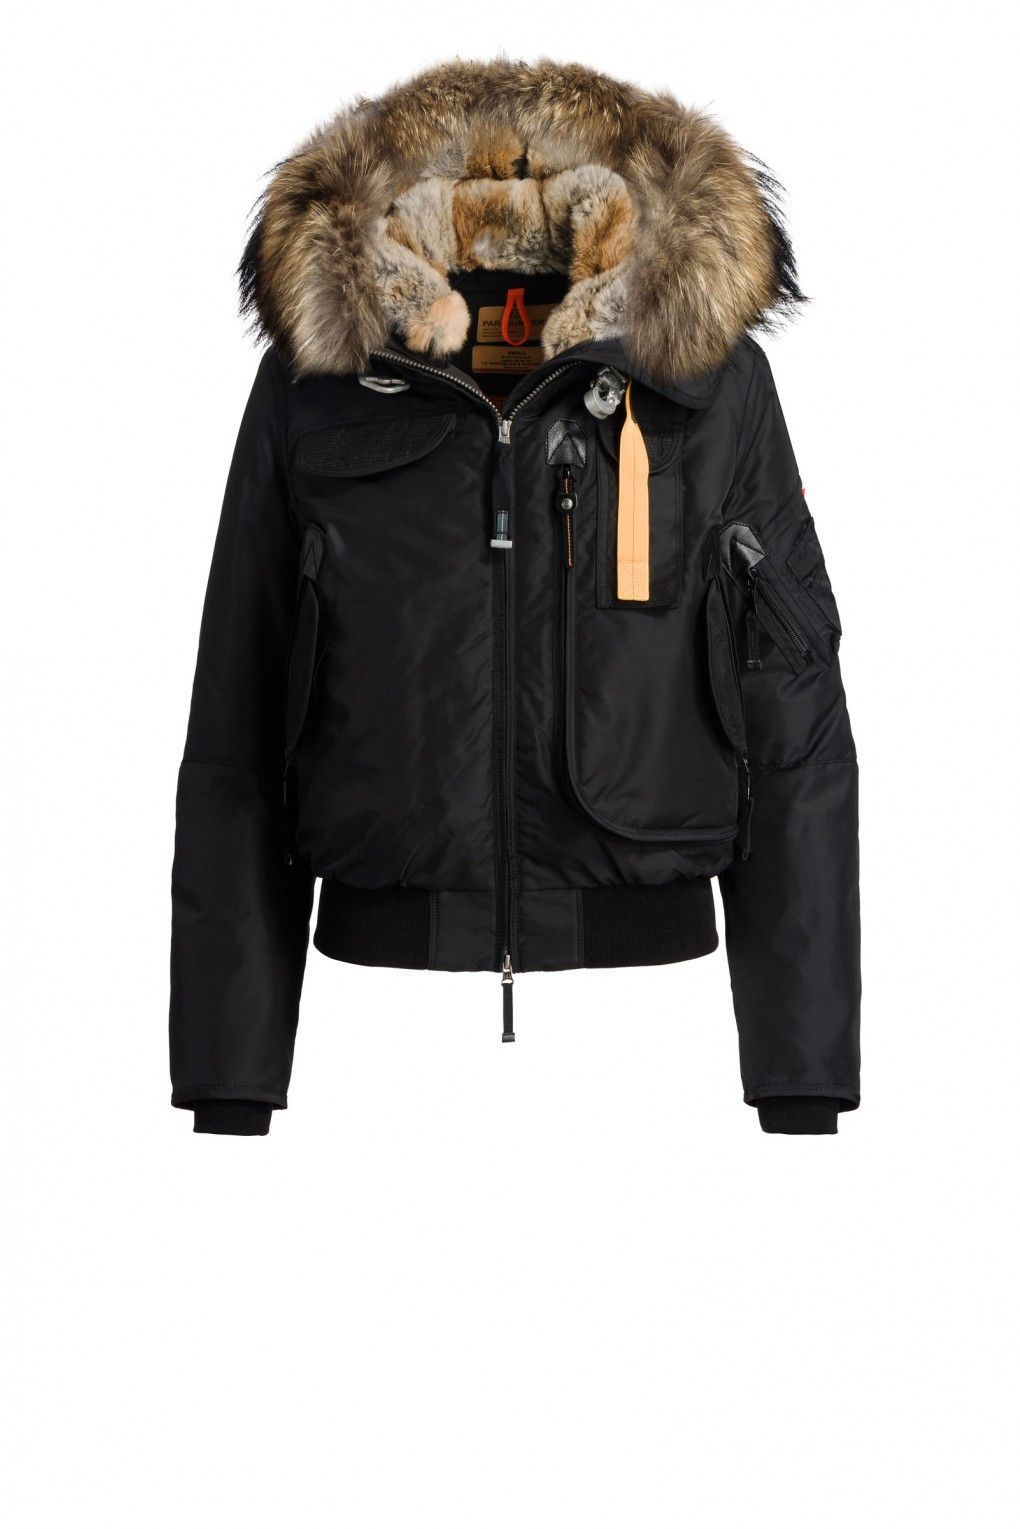 548e9f118354 Parajumpers - Gobi - Bomber Jacket - Black in 2019